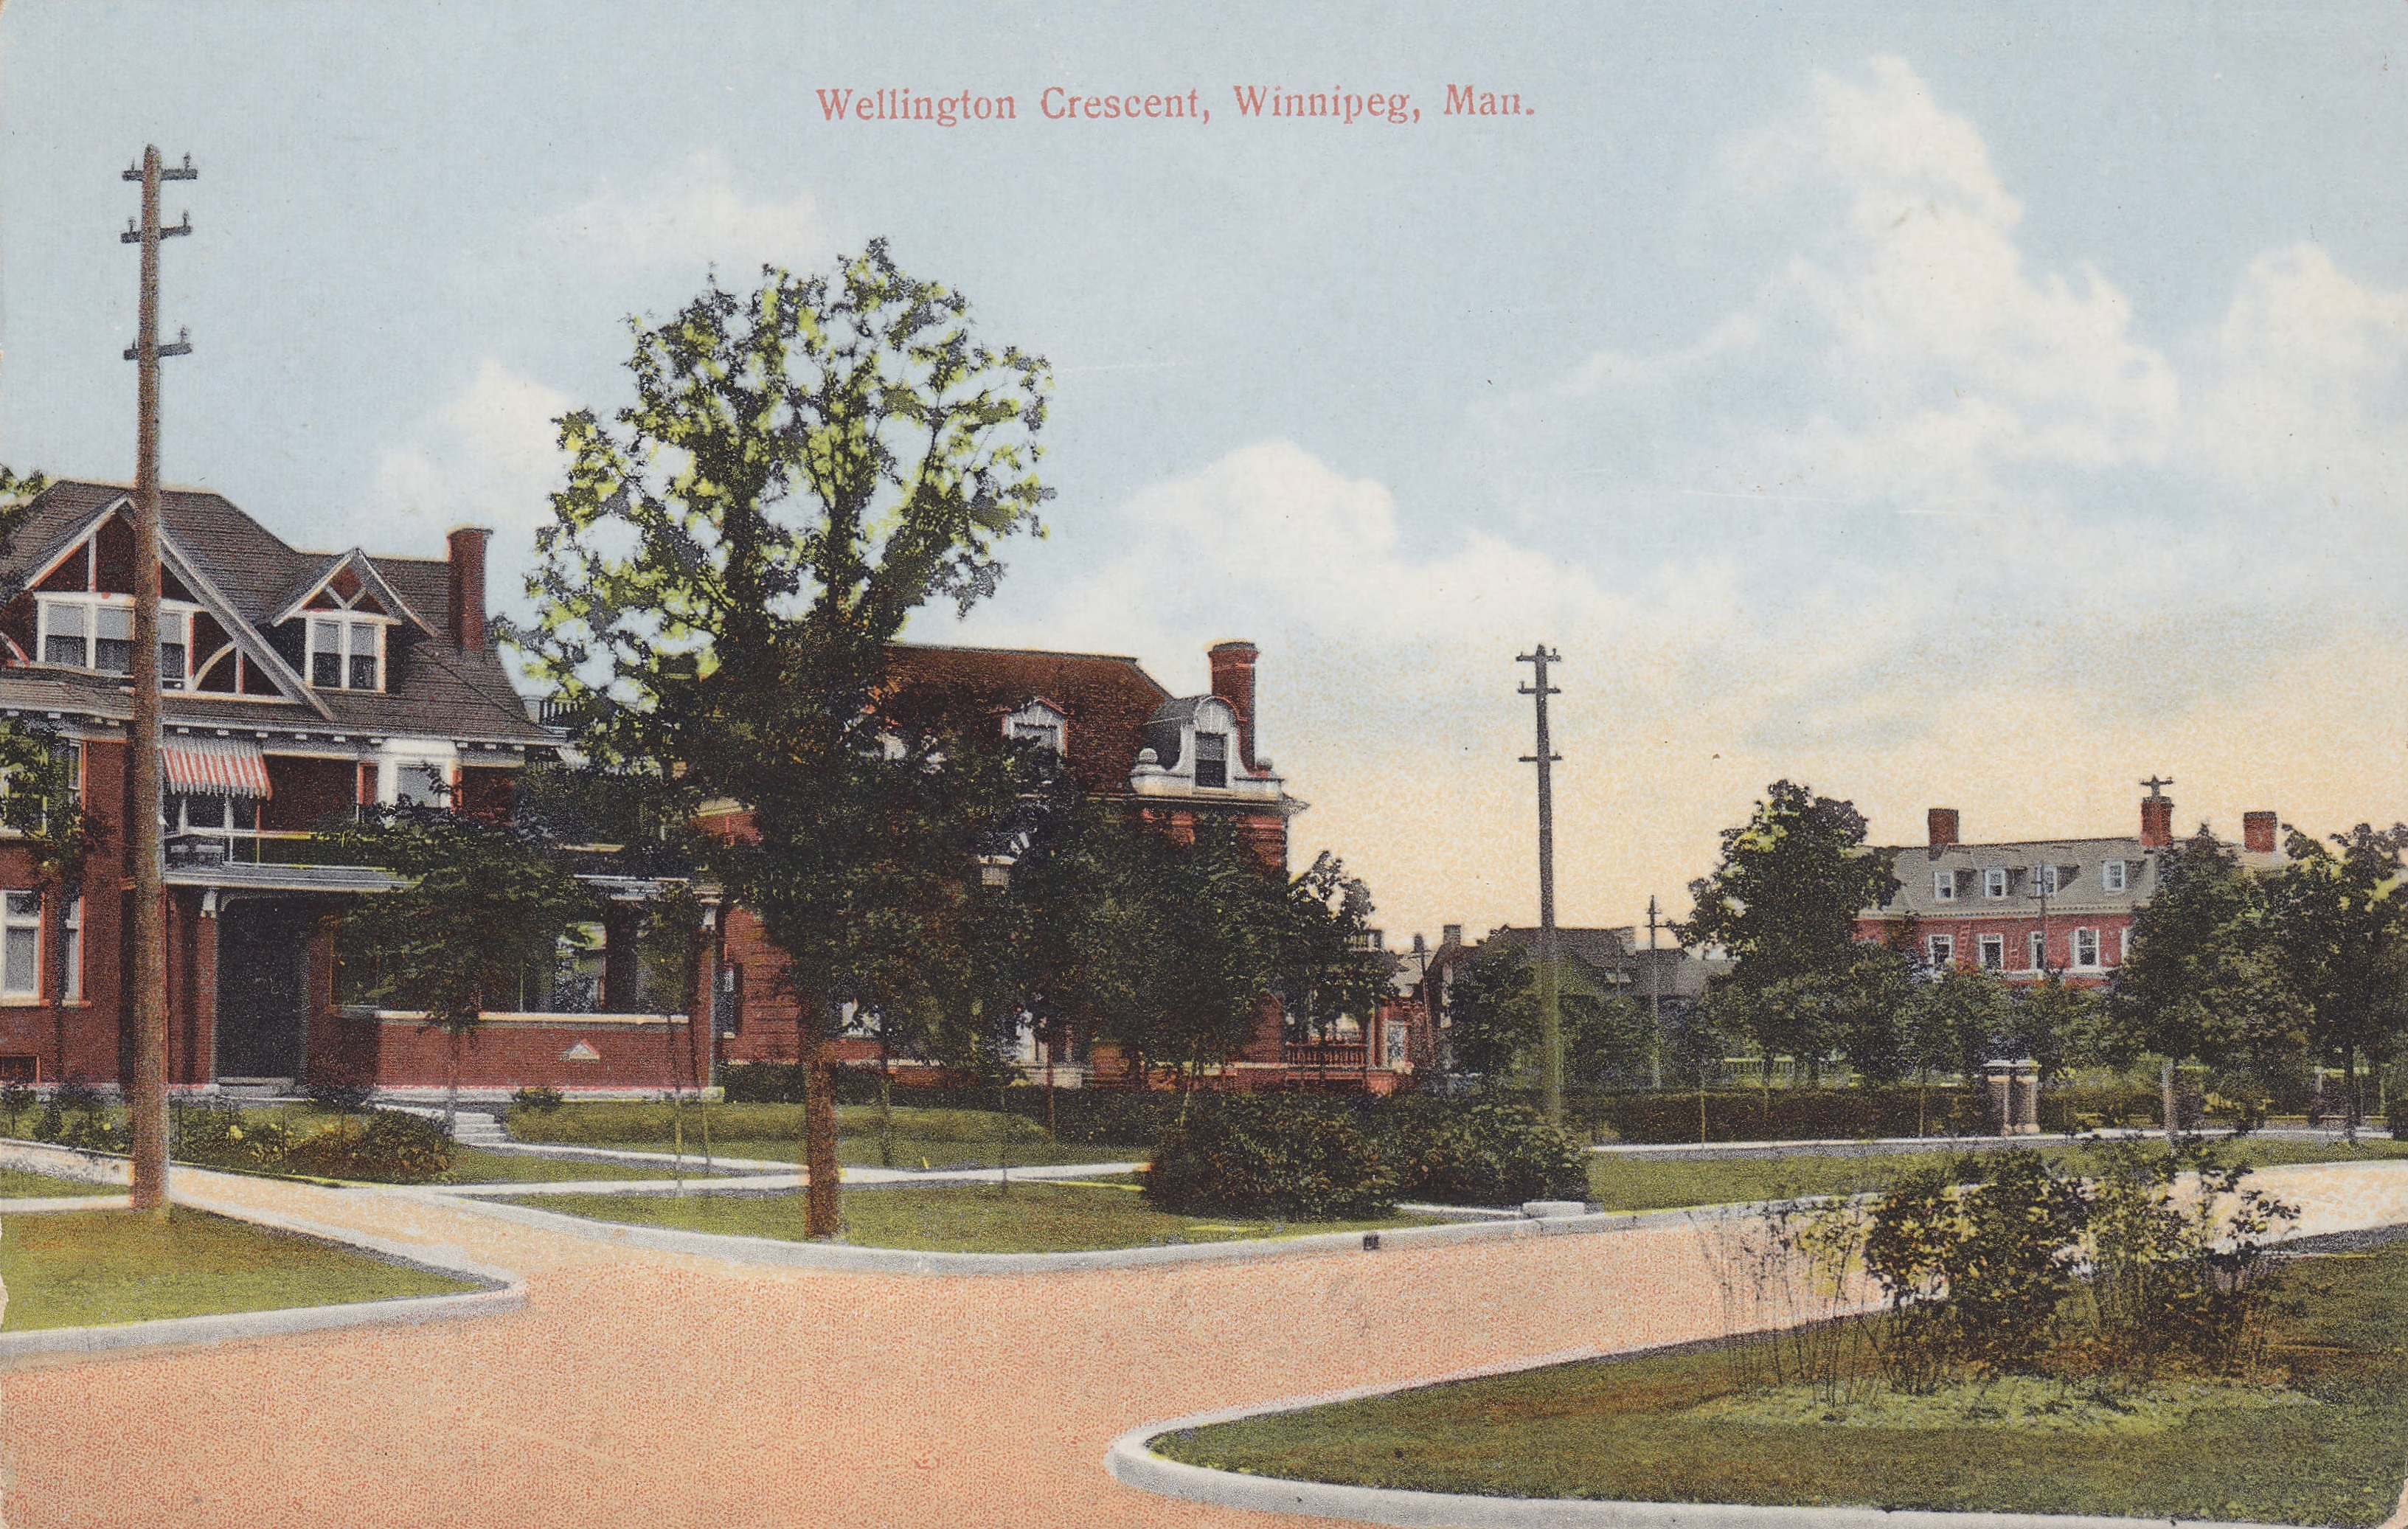 A postcard printed between 1903 and 1913 shows two stately mansions on the south side of Wellington Crescent. The homes, built in 1906, are still there in 2019. (Rob McInnes/Winnipeg Public Library)